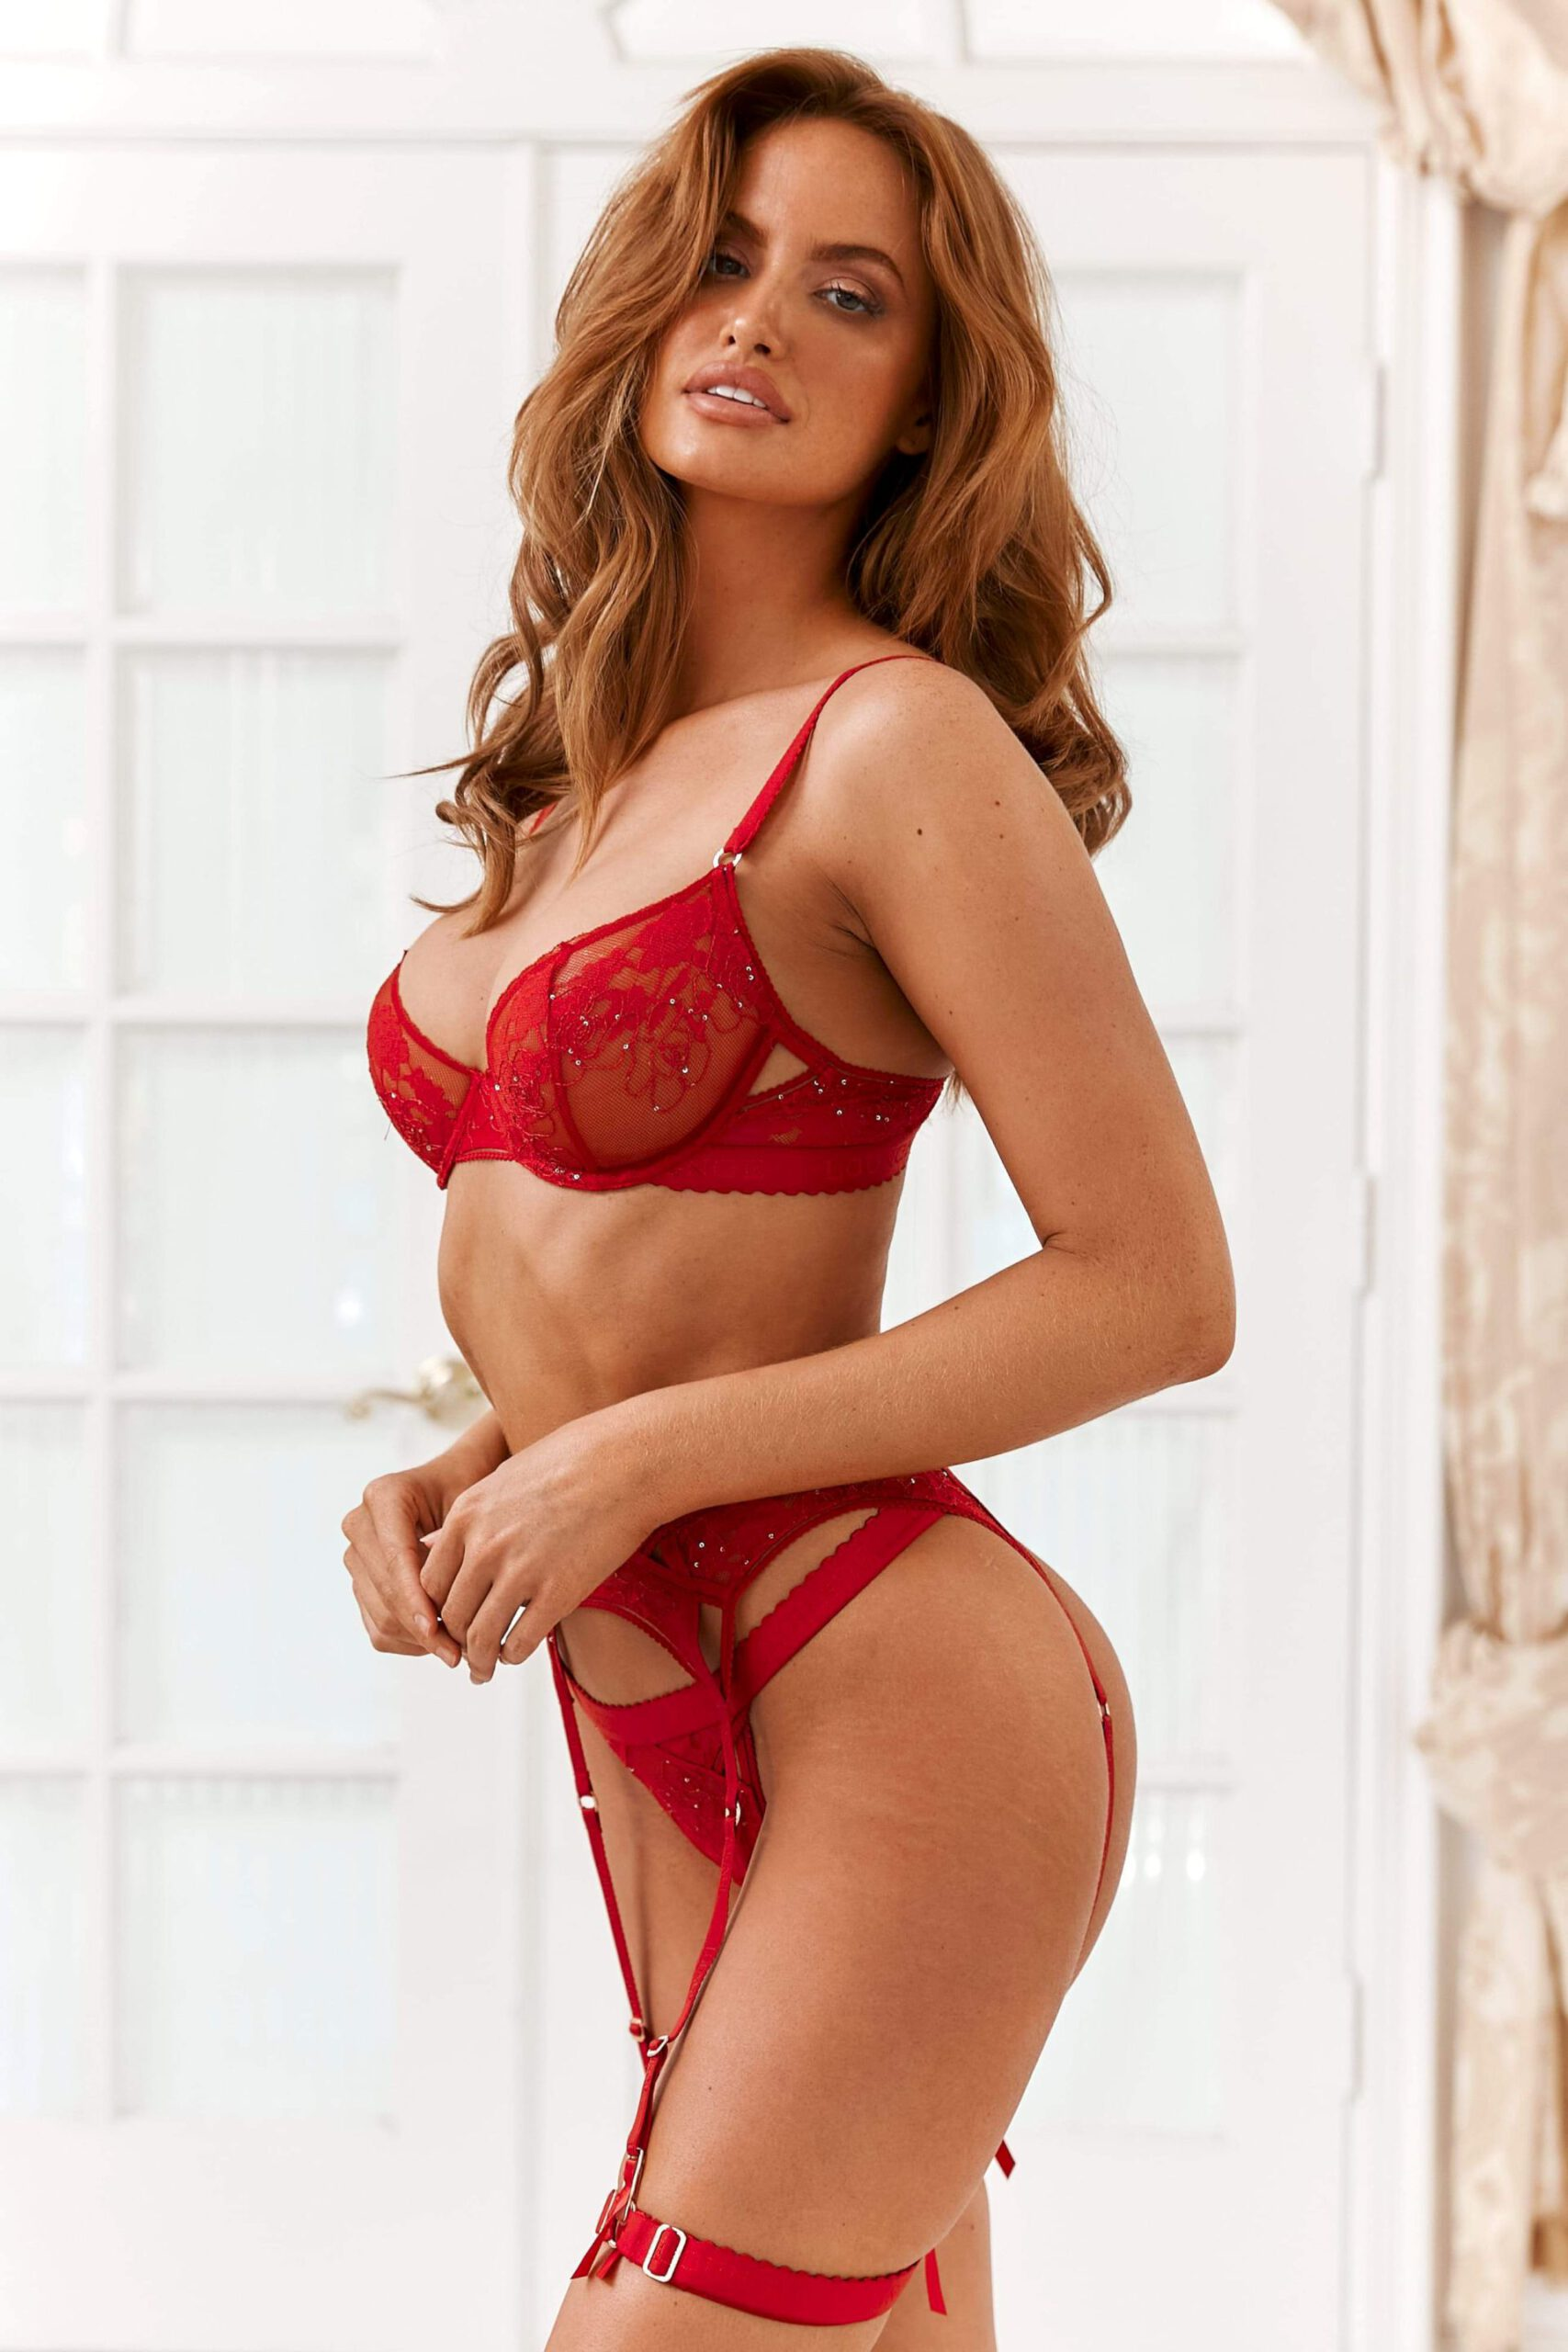 Haley Kalil In Sexy Lingerie